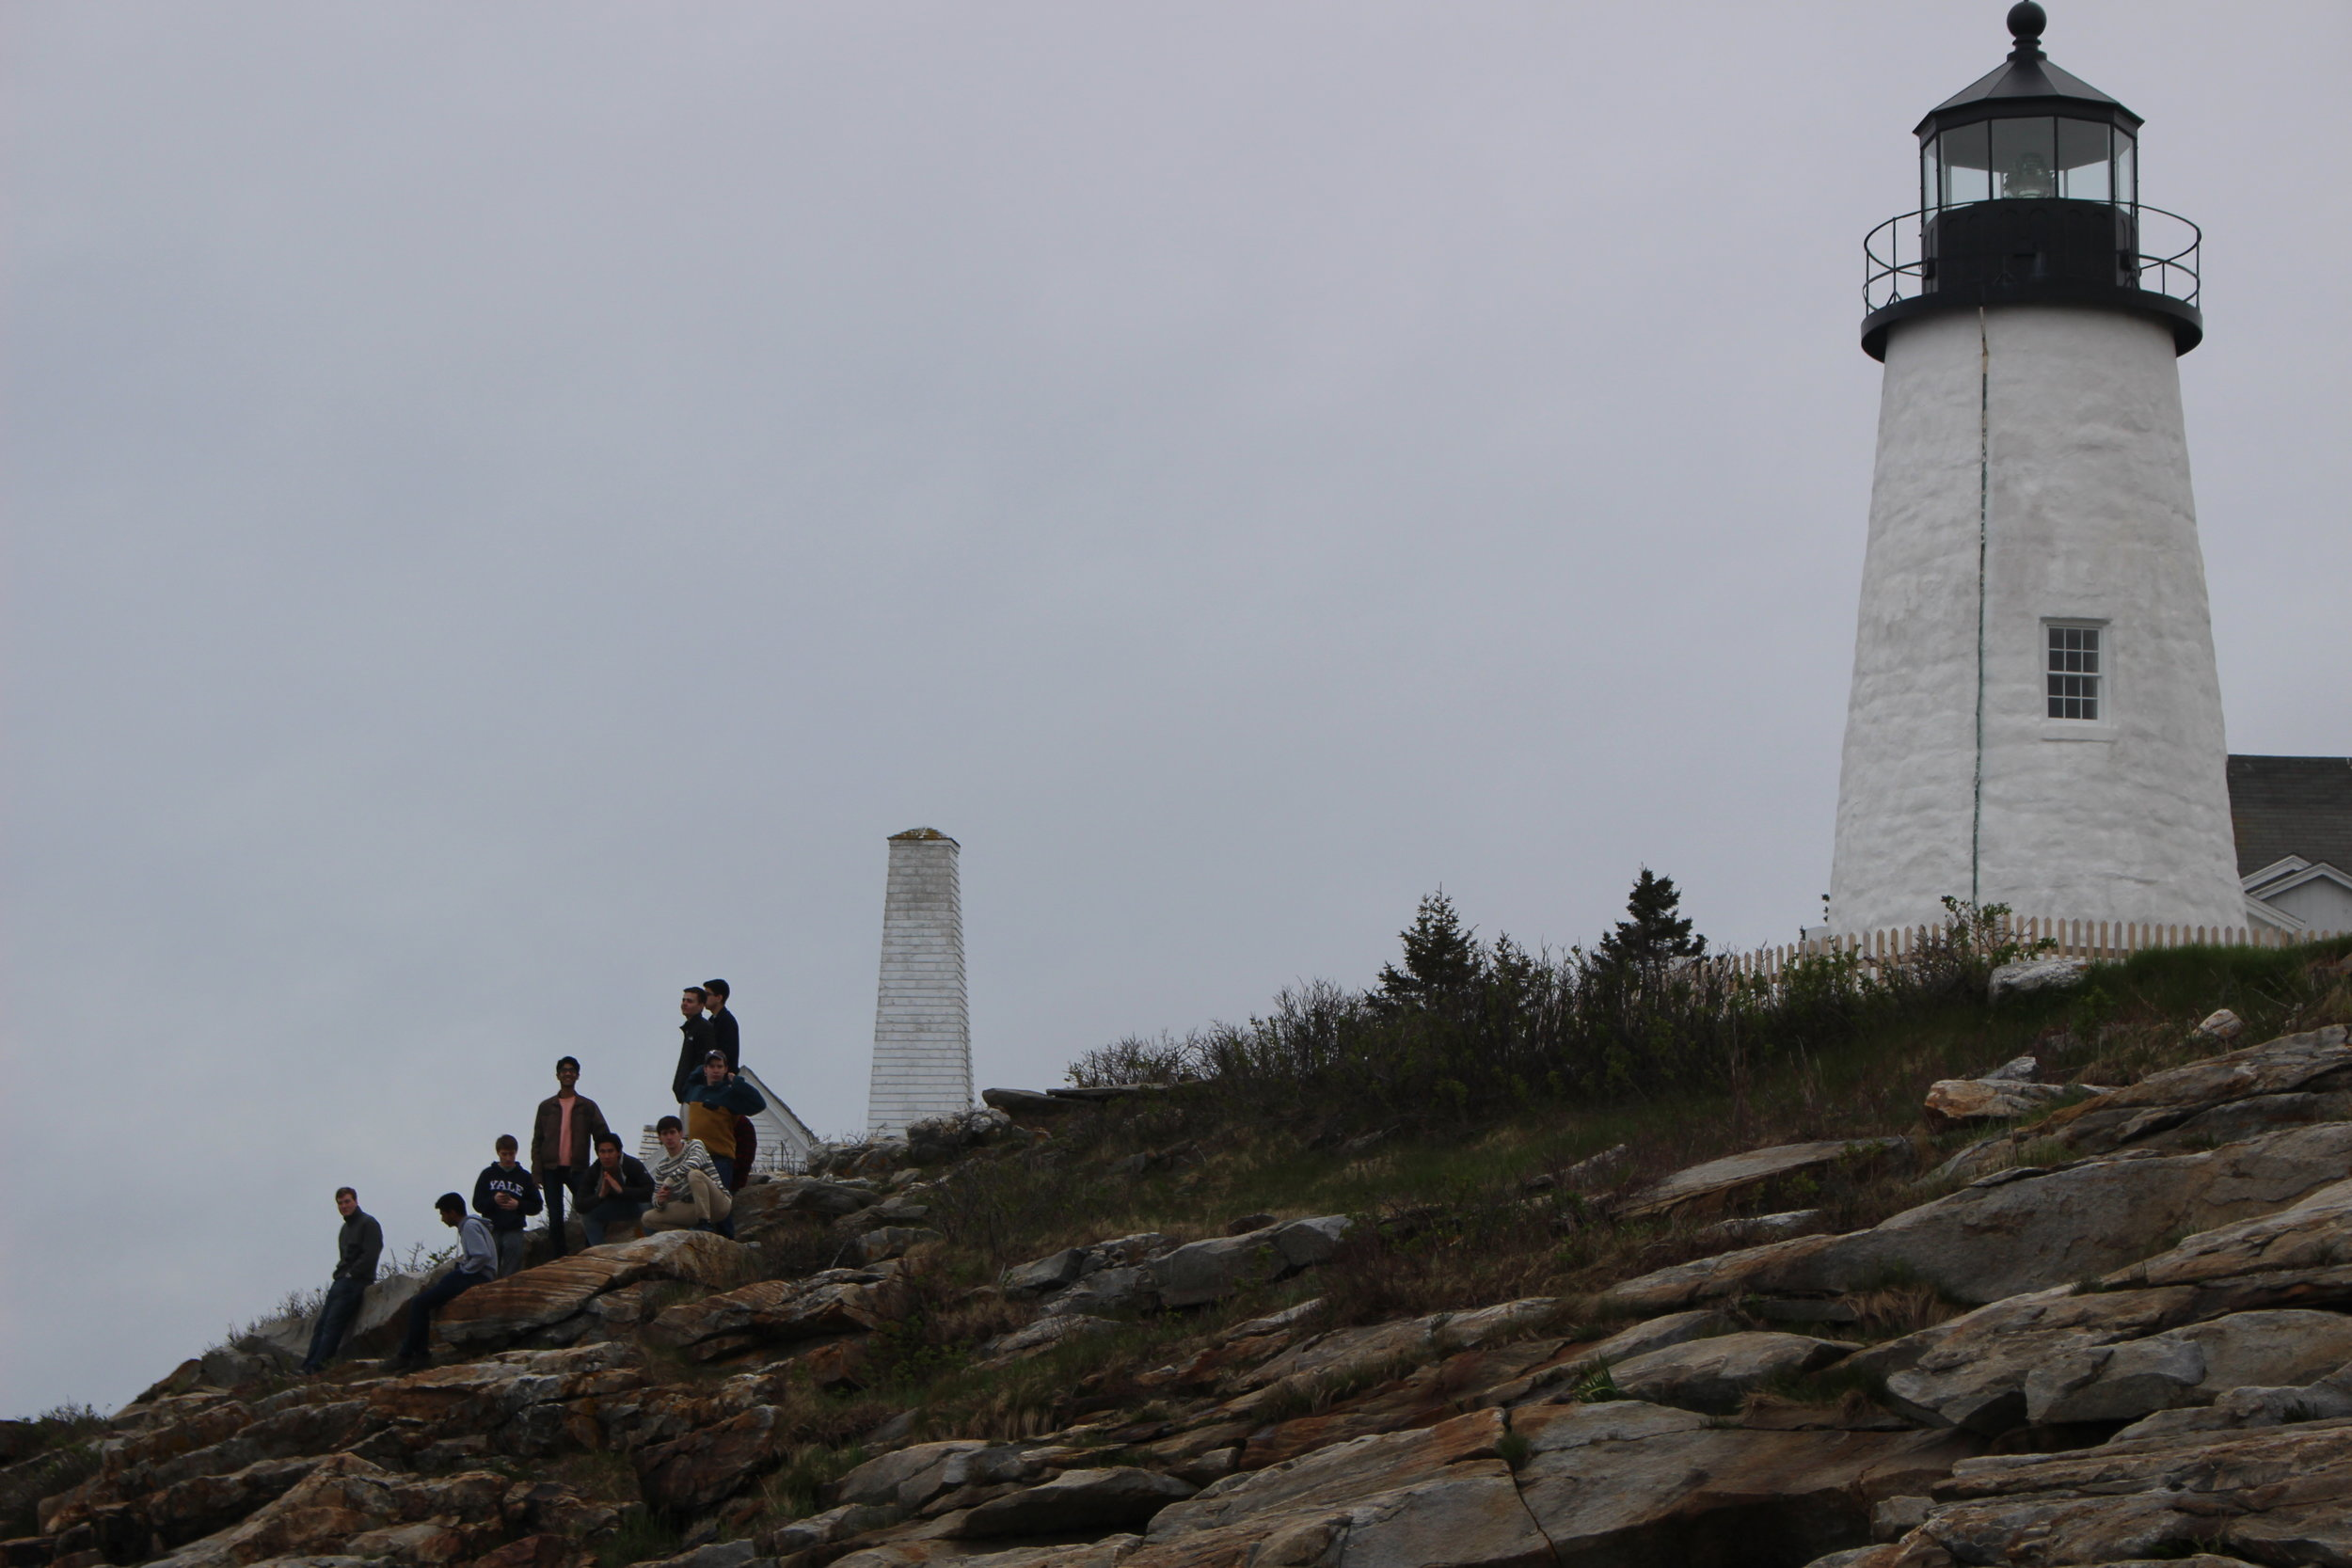 Visiting a traditional Maine Lighthouse